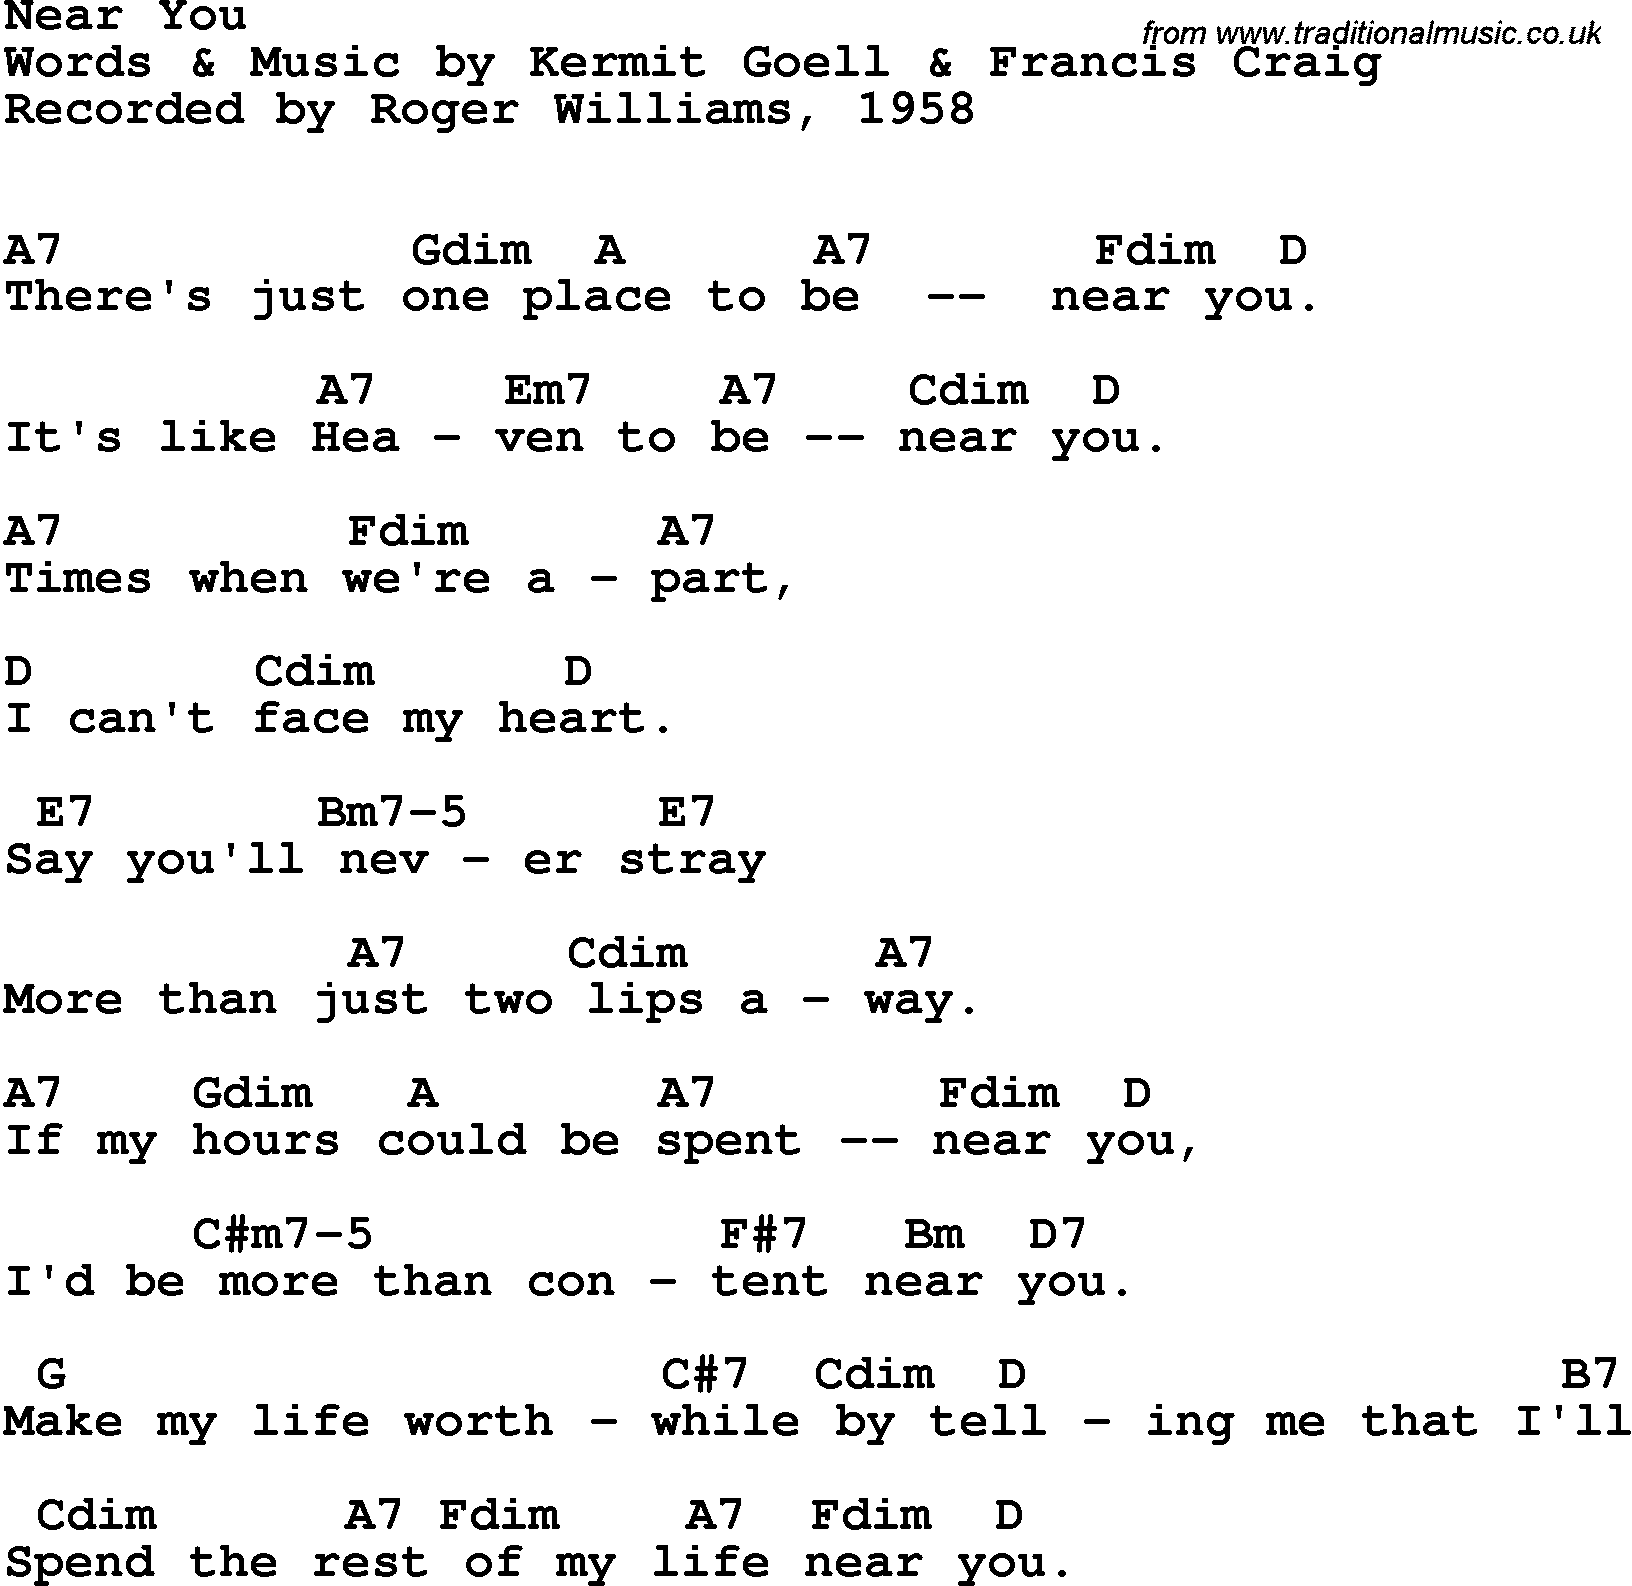 Song lyrics with guitar chords for Near You   Roger Williams, 15